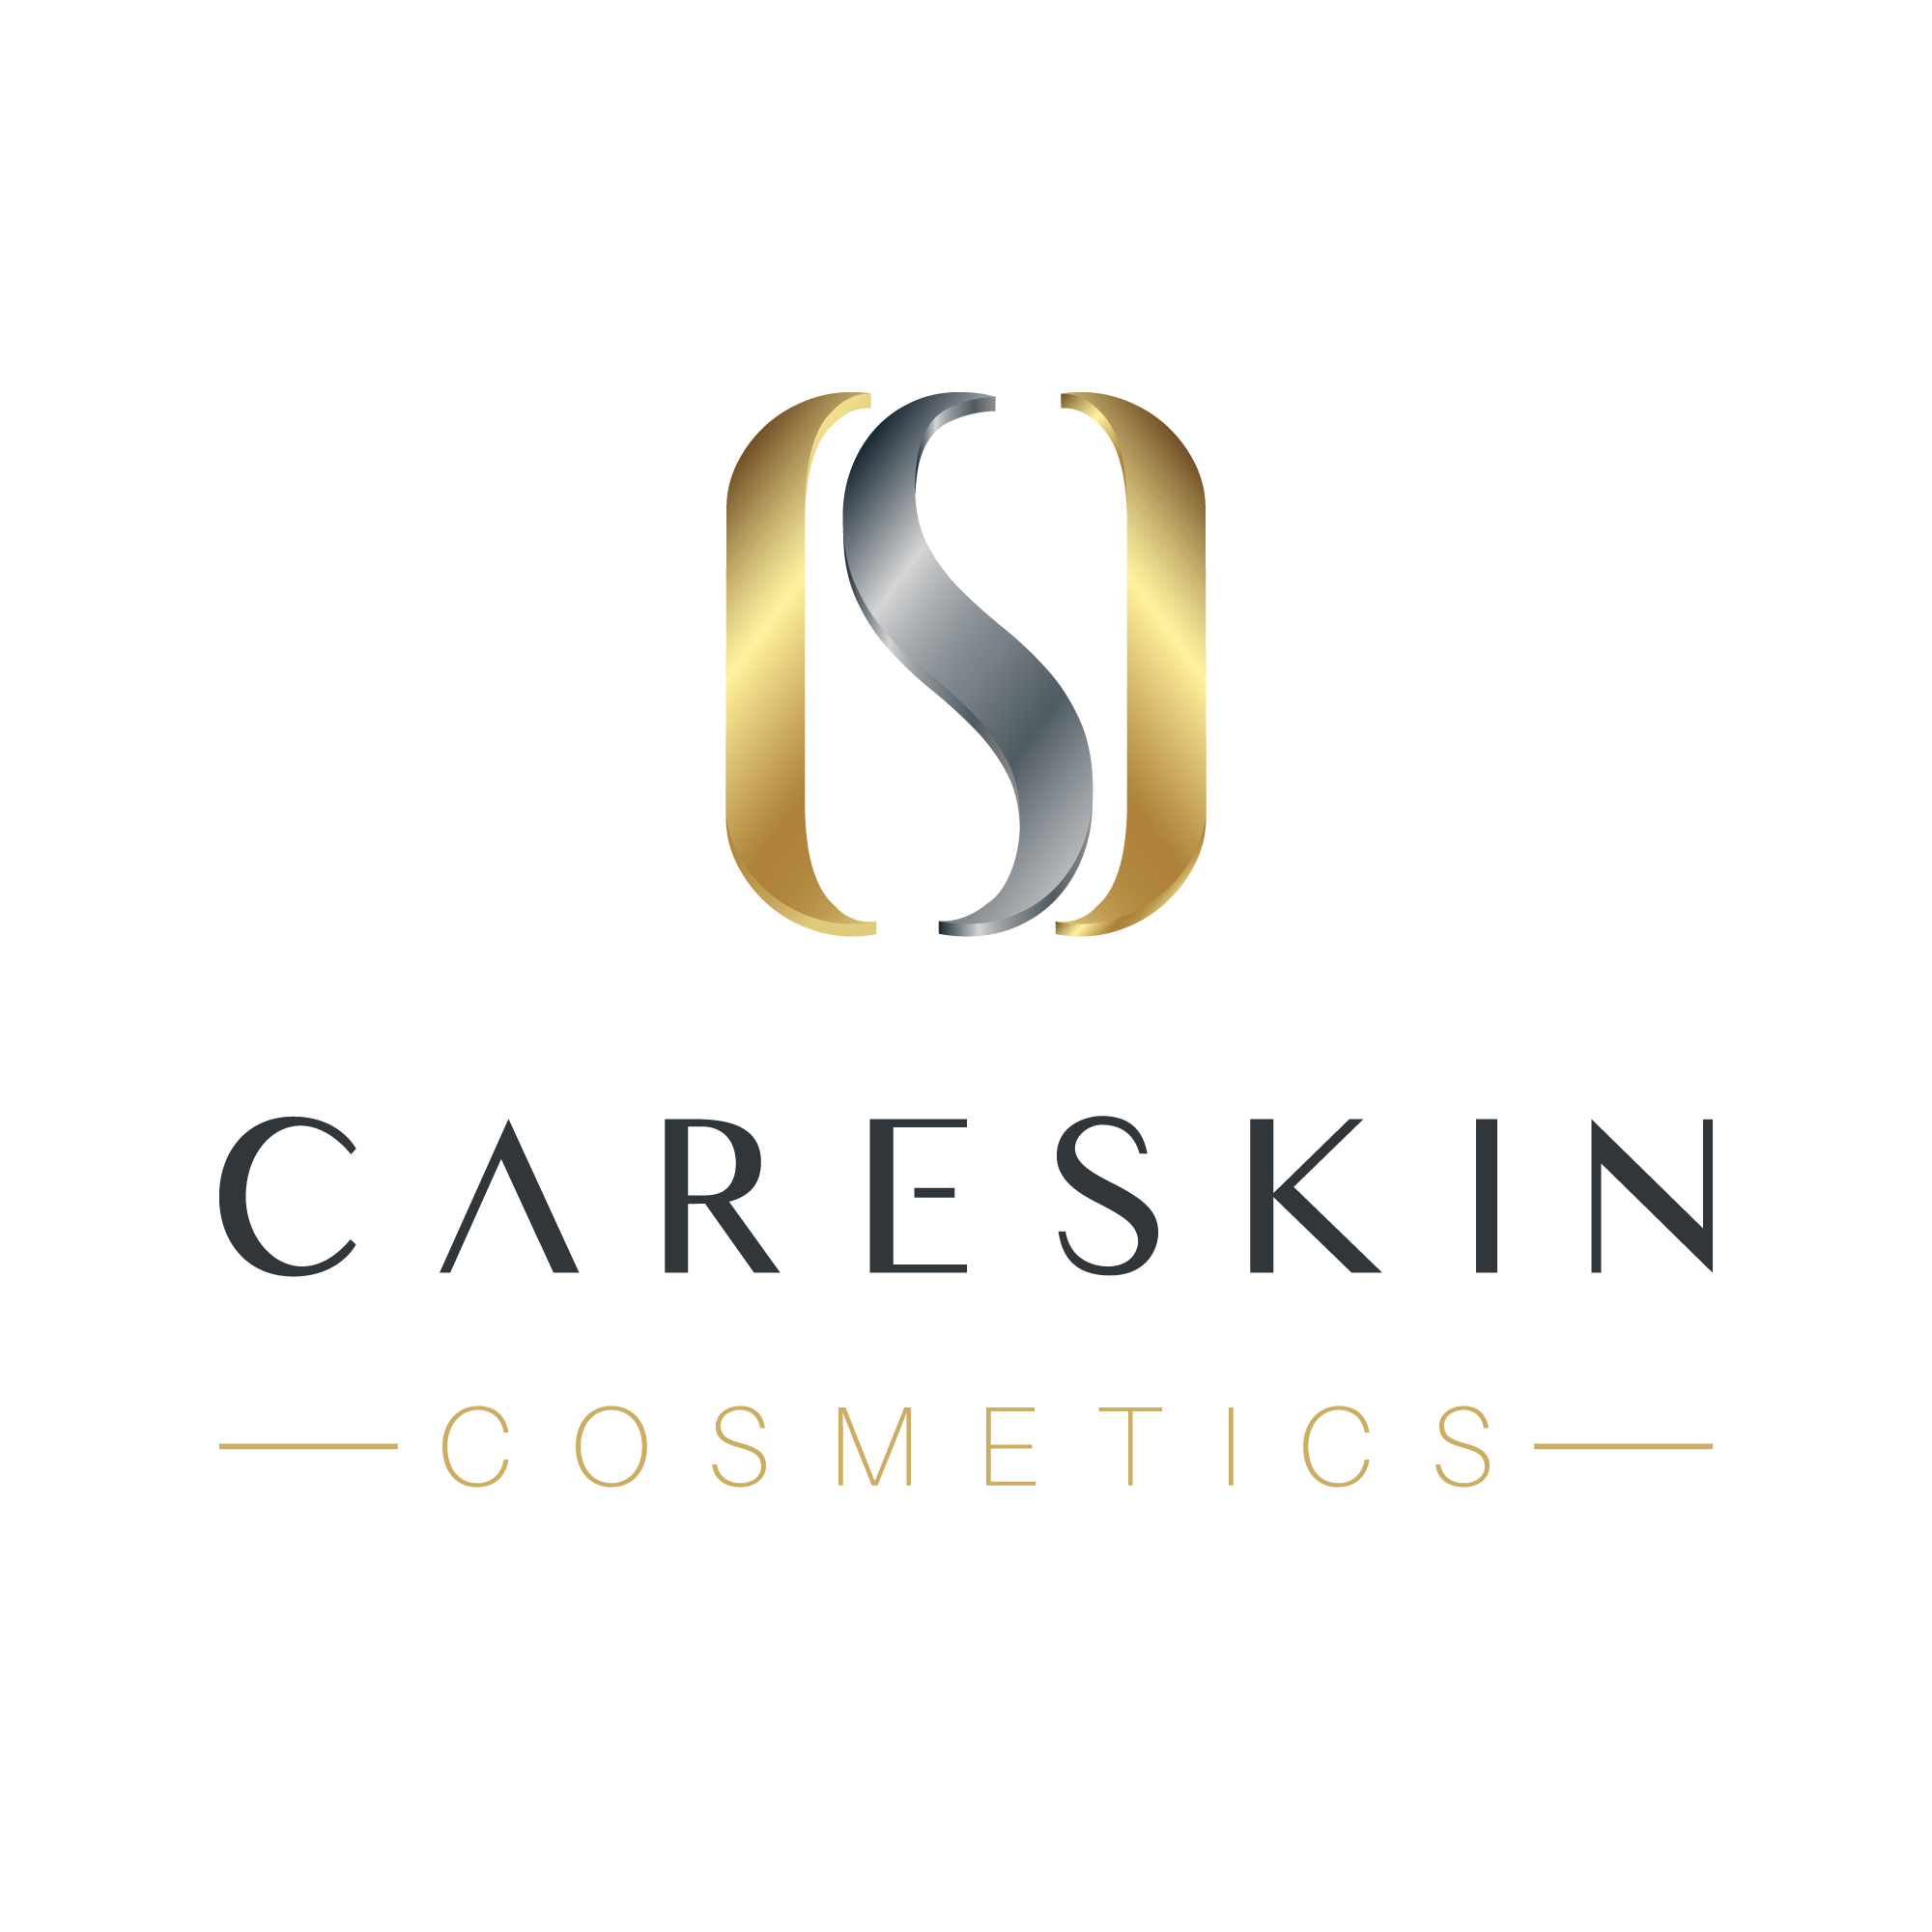 Careskin Cosmetics GmbH